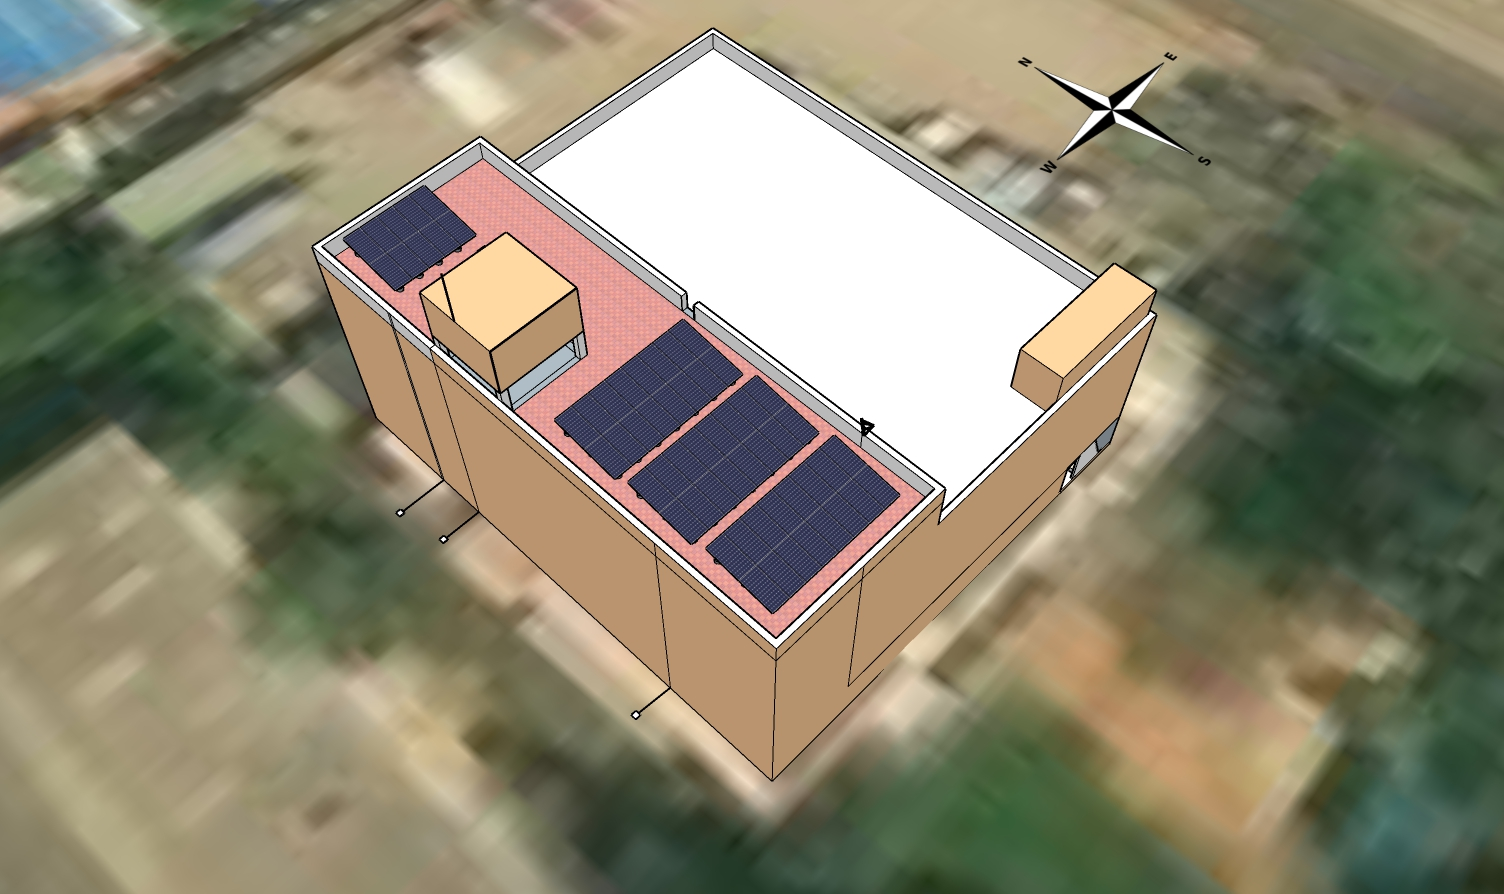 3-D model prepared on SketchUp